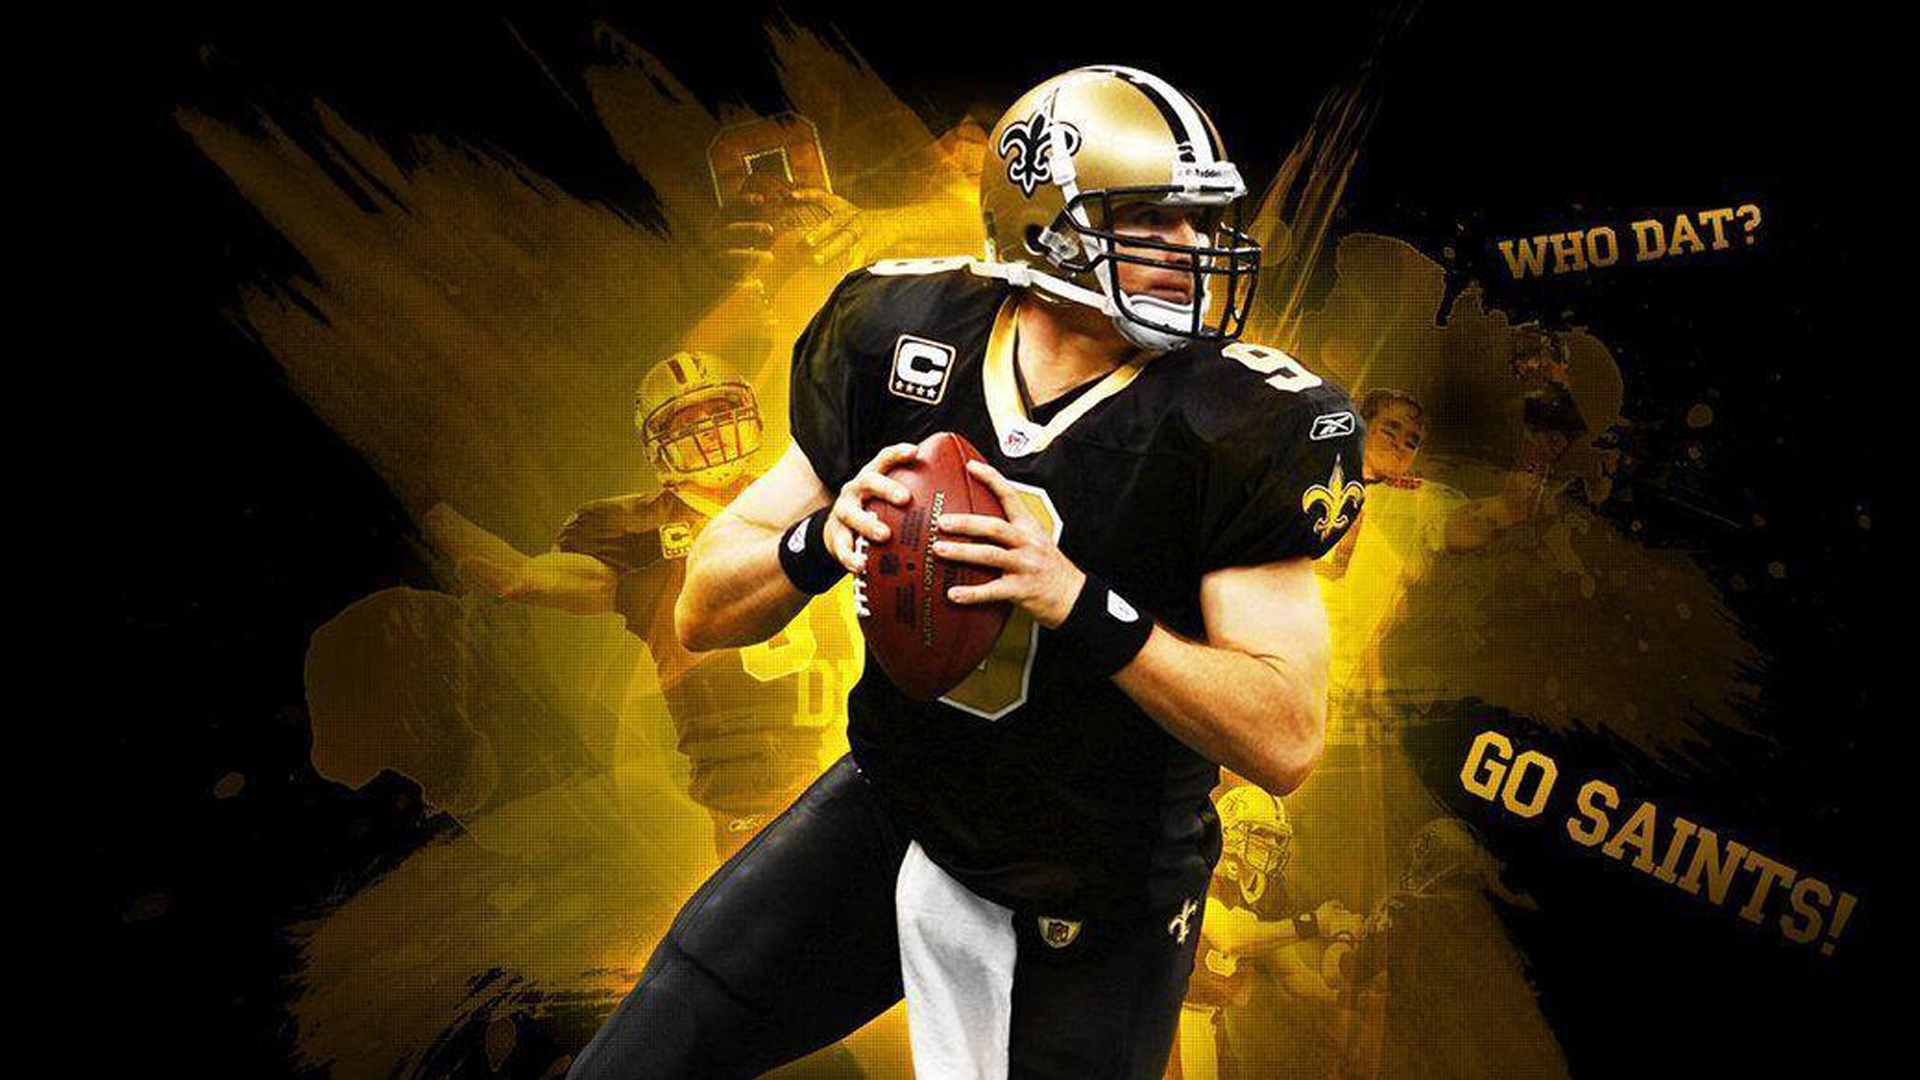 Download Drew Brees With Background Of Yellow And Black Hd Drew Brees